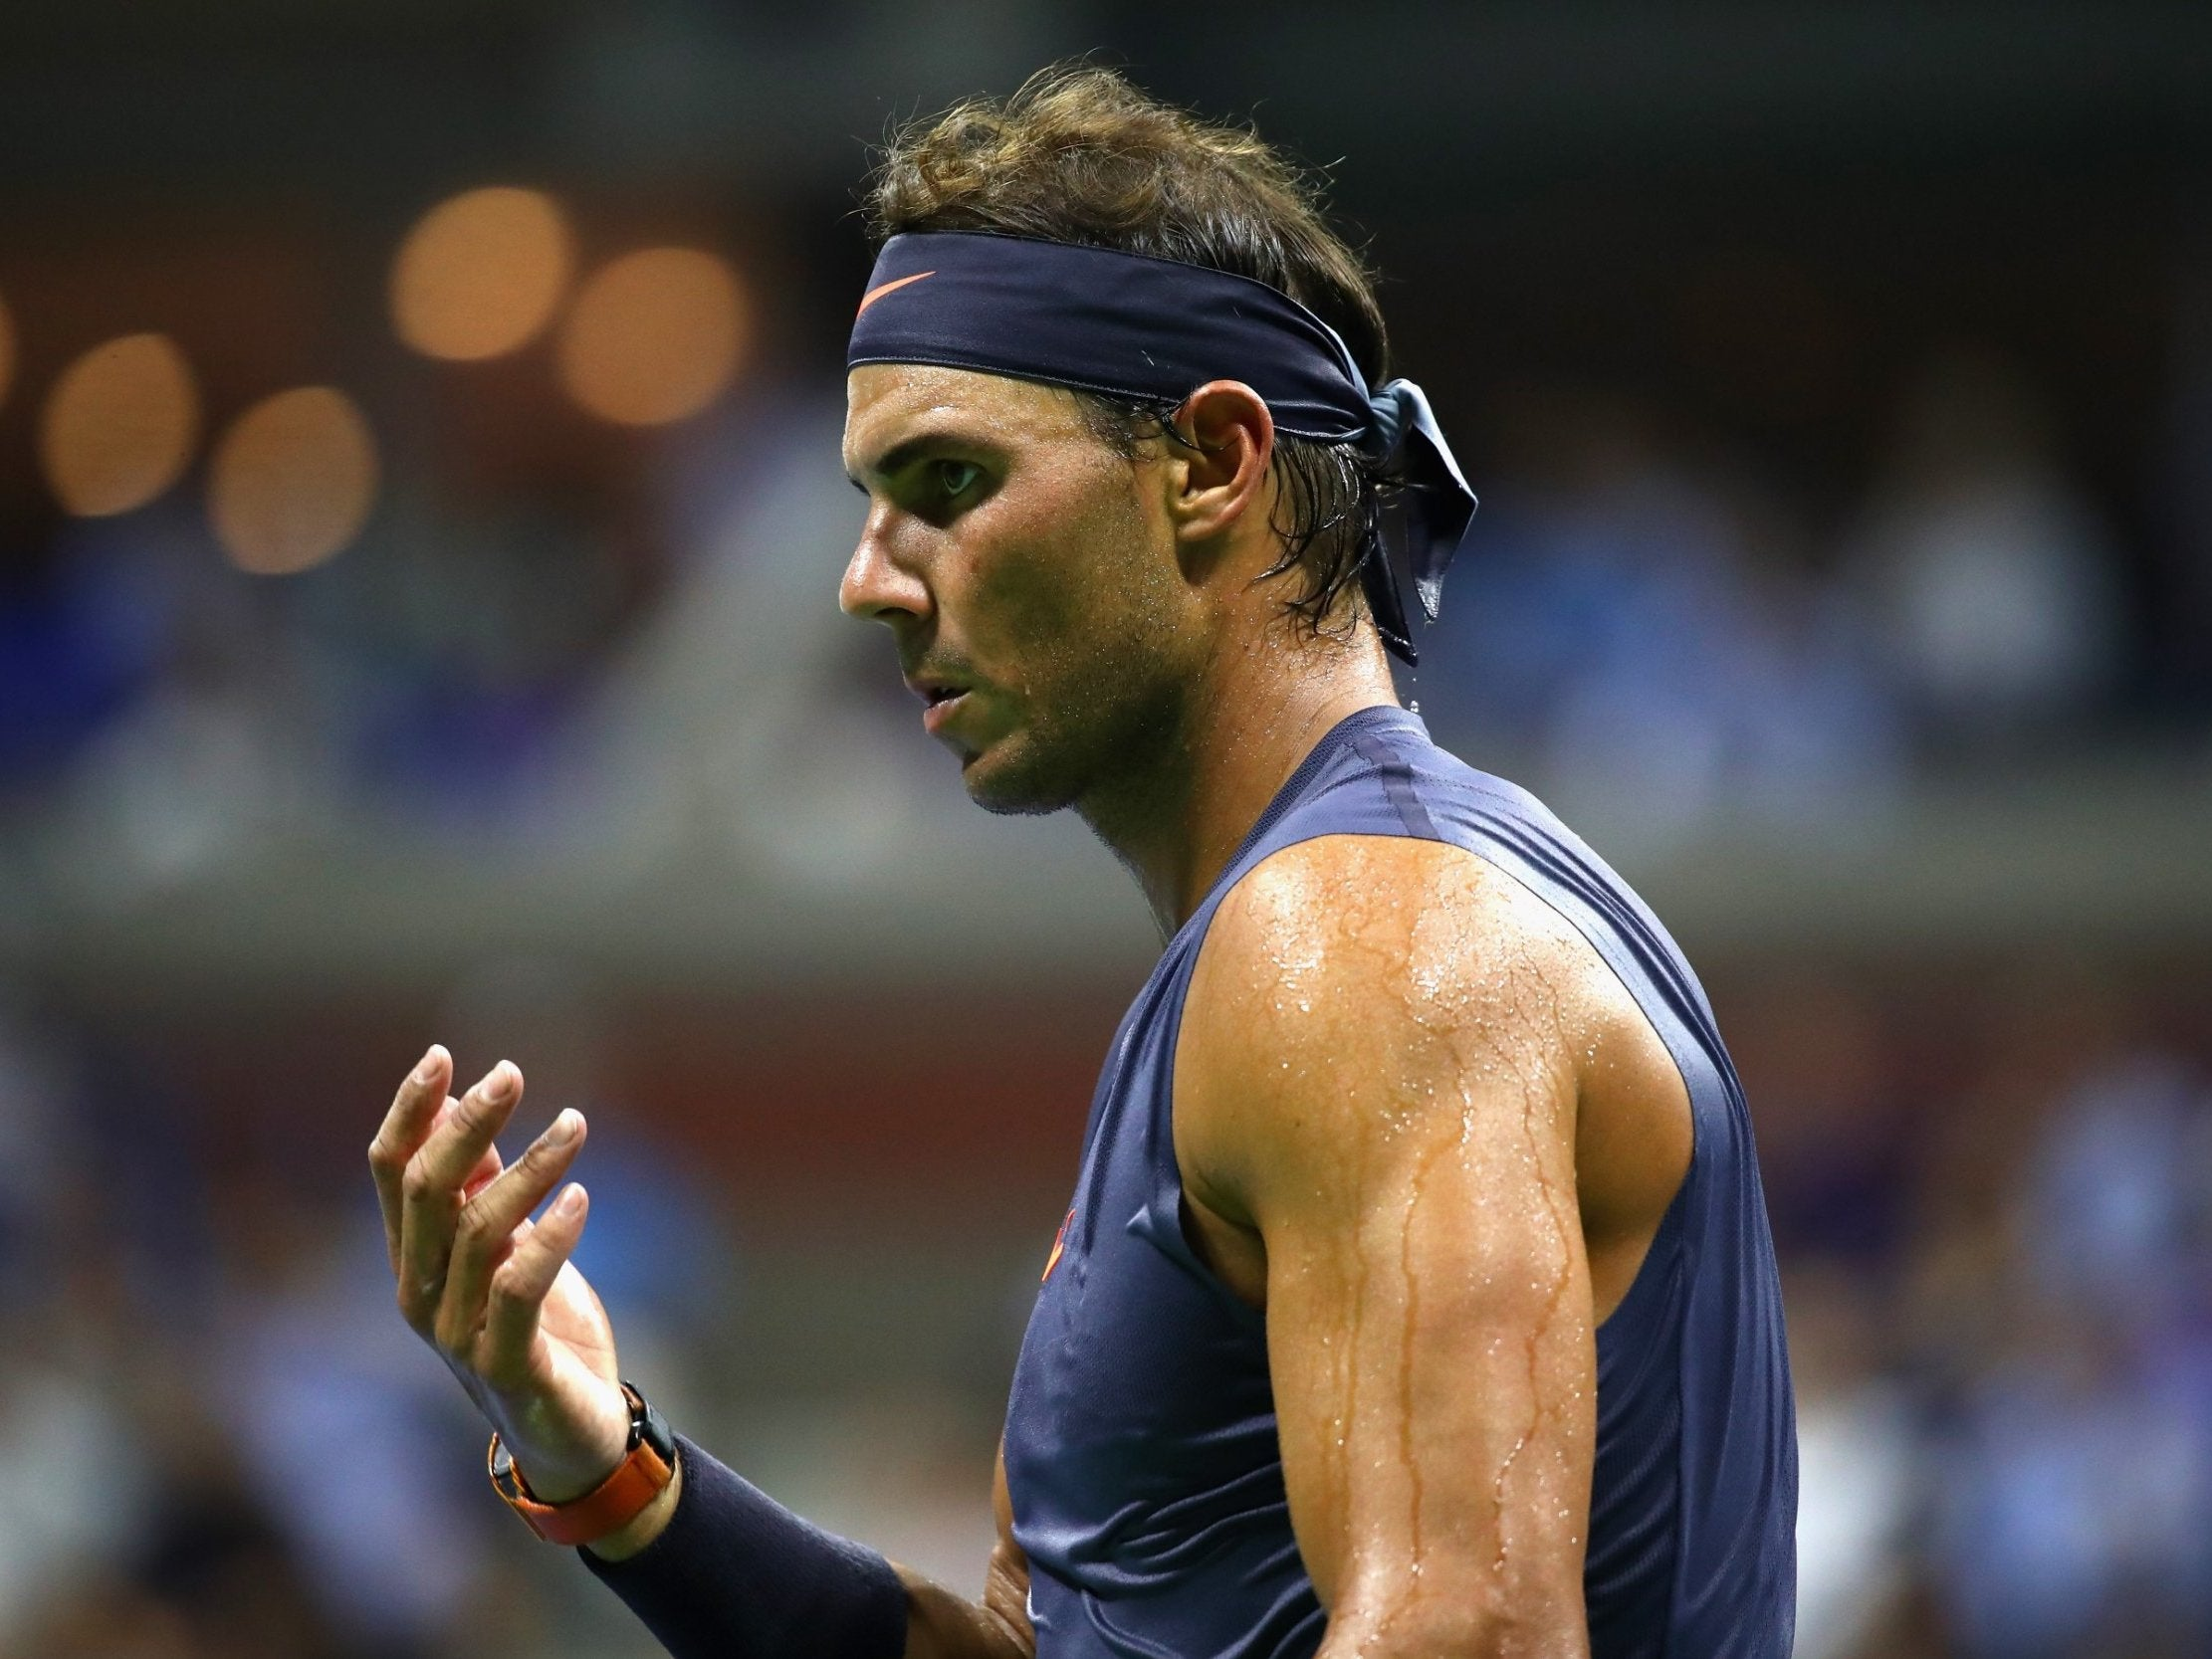 Us Open 2018 Rafael Nadal Through After David Ferrer Retires Injured The Independent The Independent